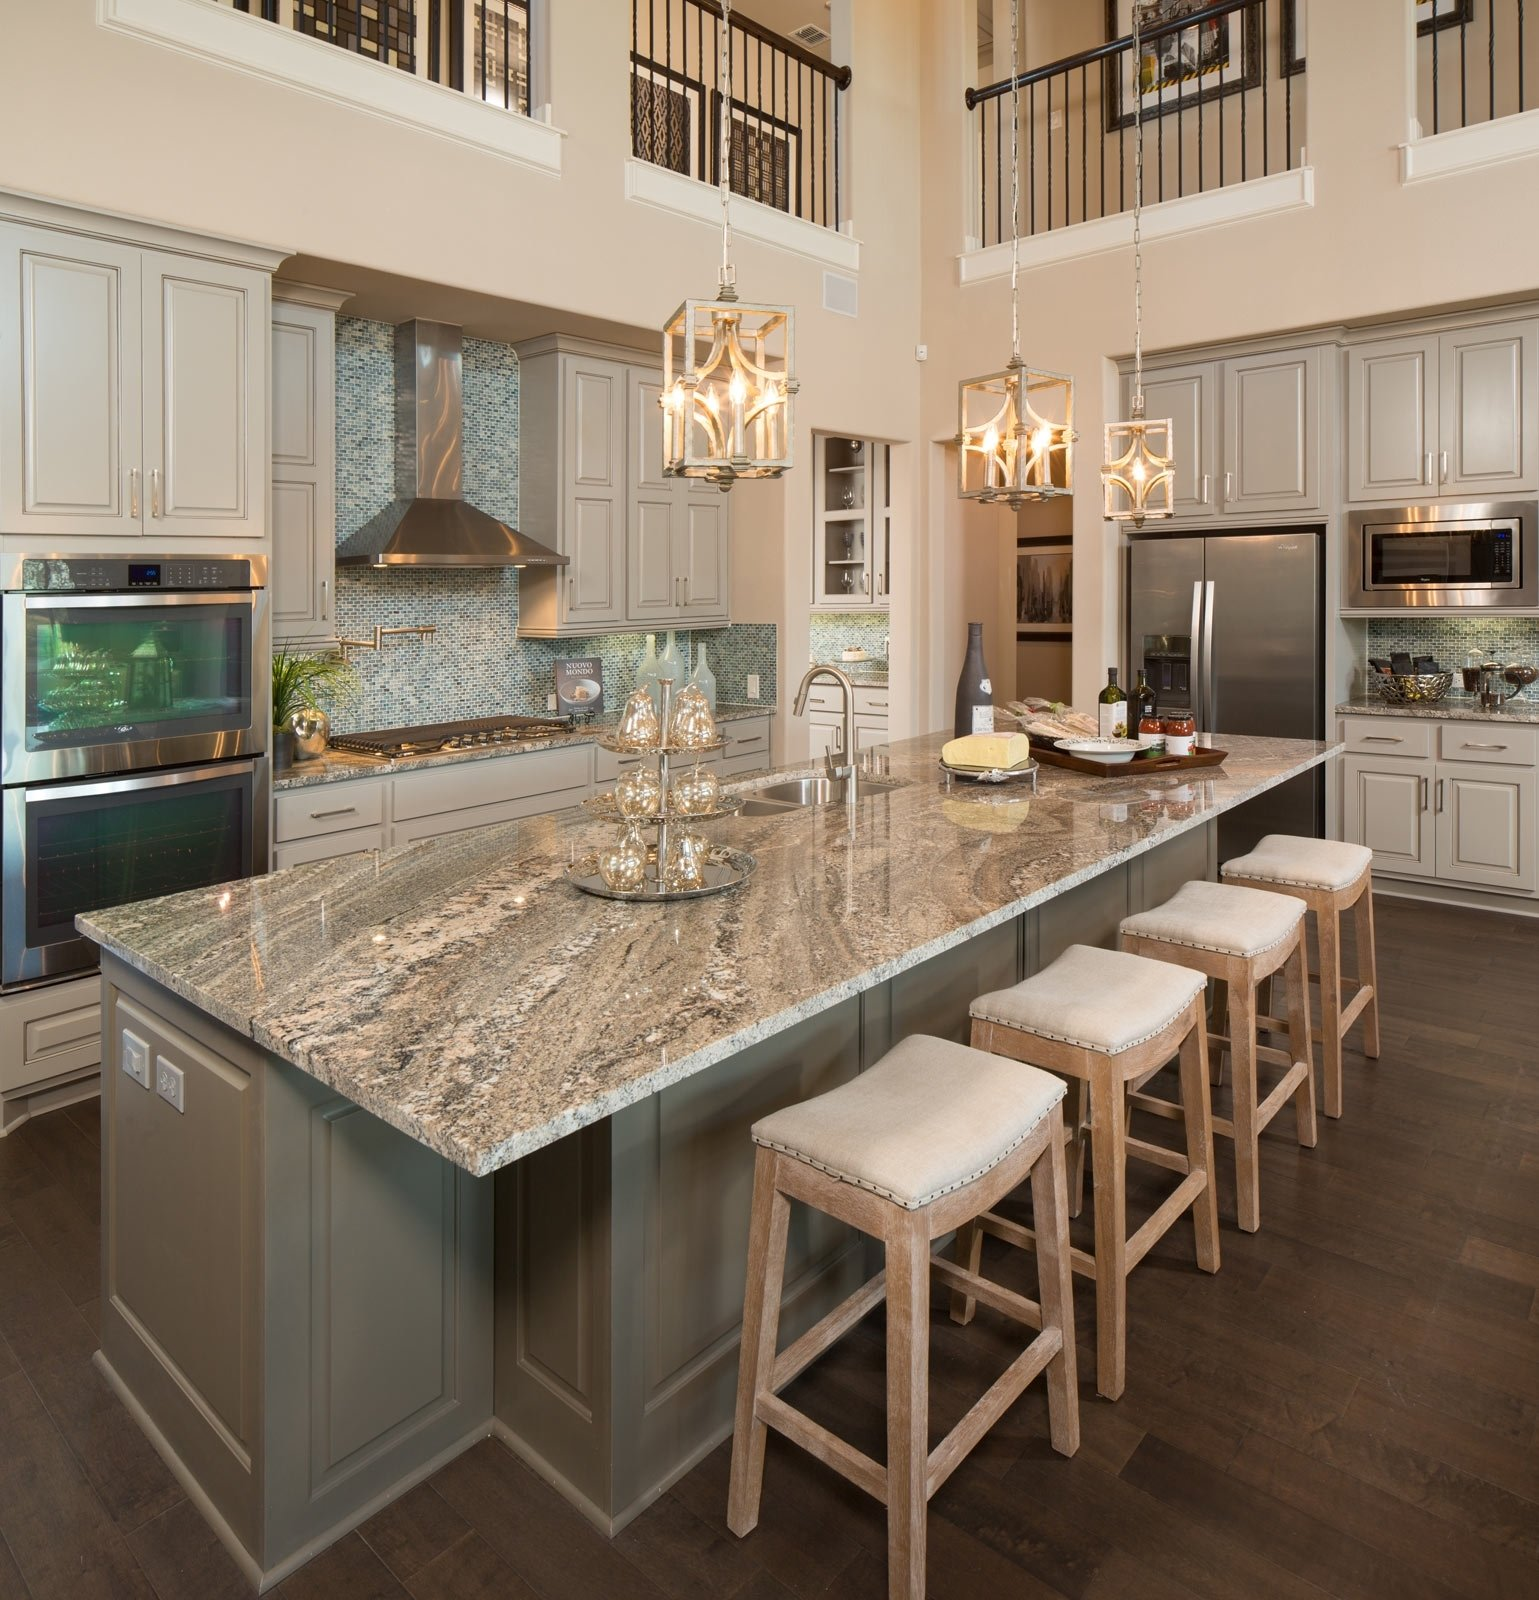 Kitchen Bar Design Pictures 50 Lovely Kitchen Island Designs 2019 Ideas For Kitchen Planning